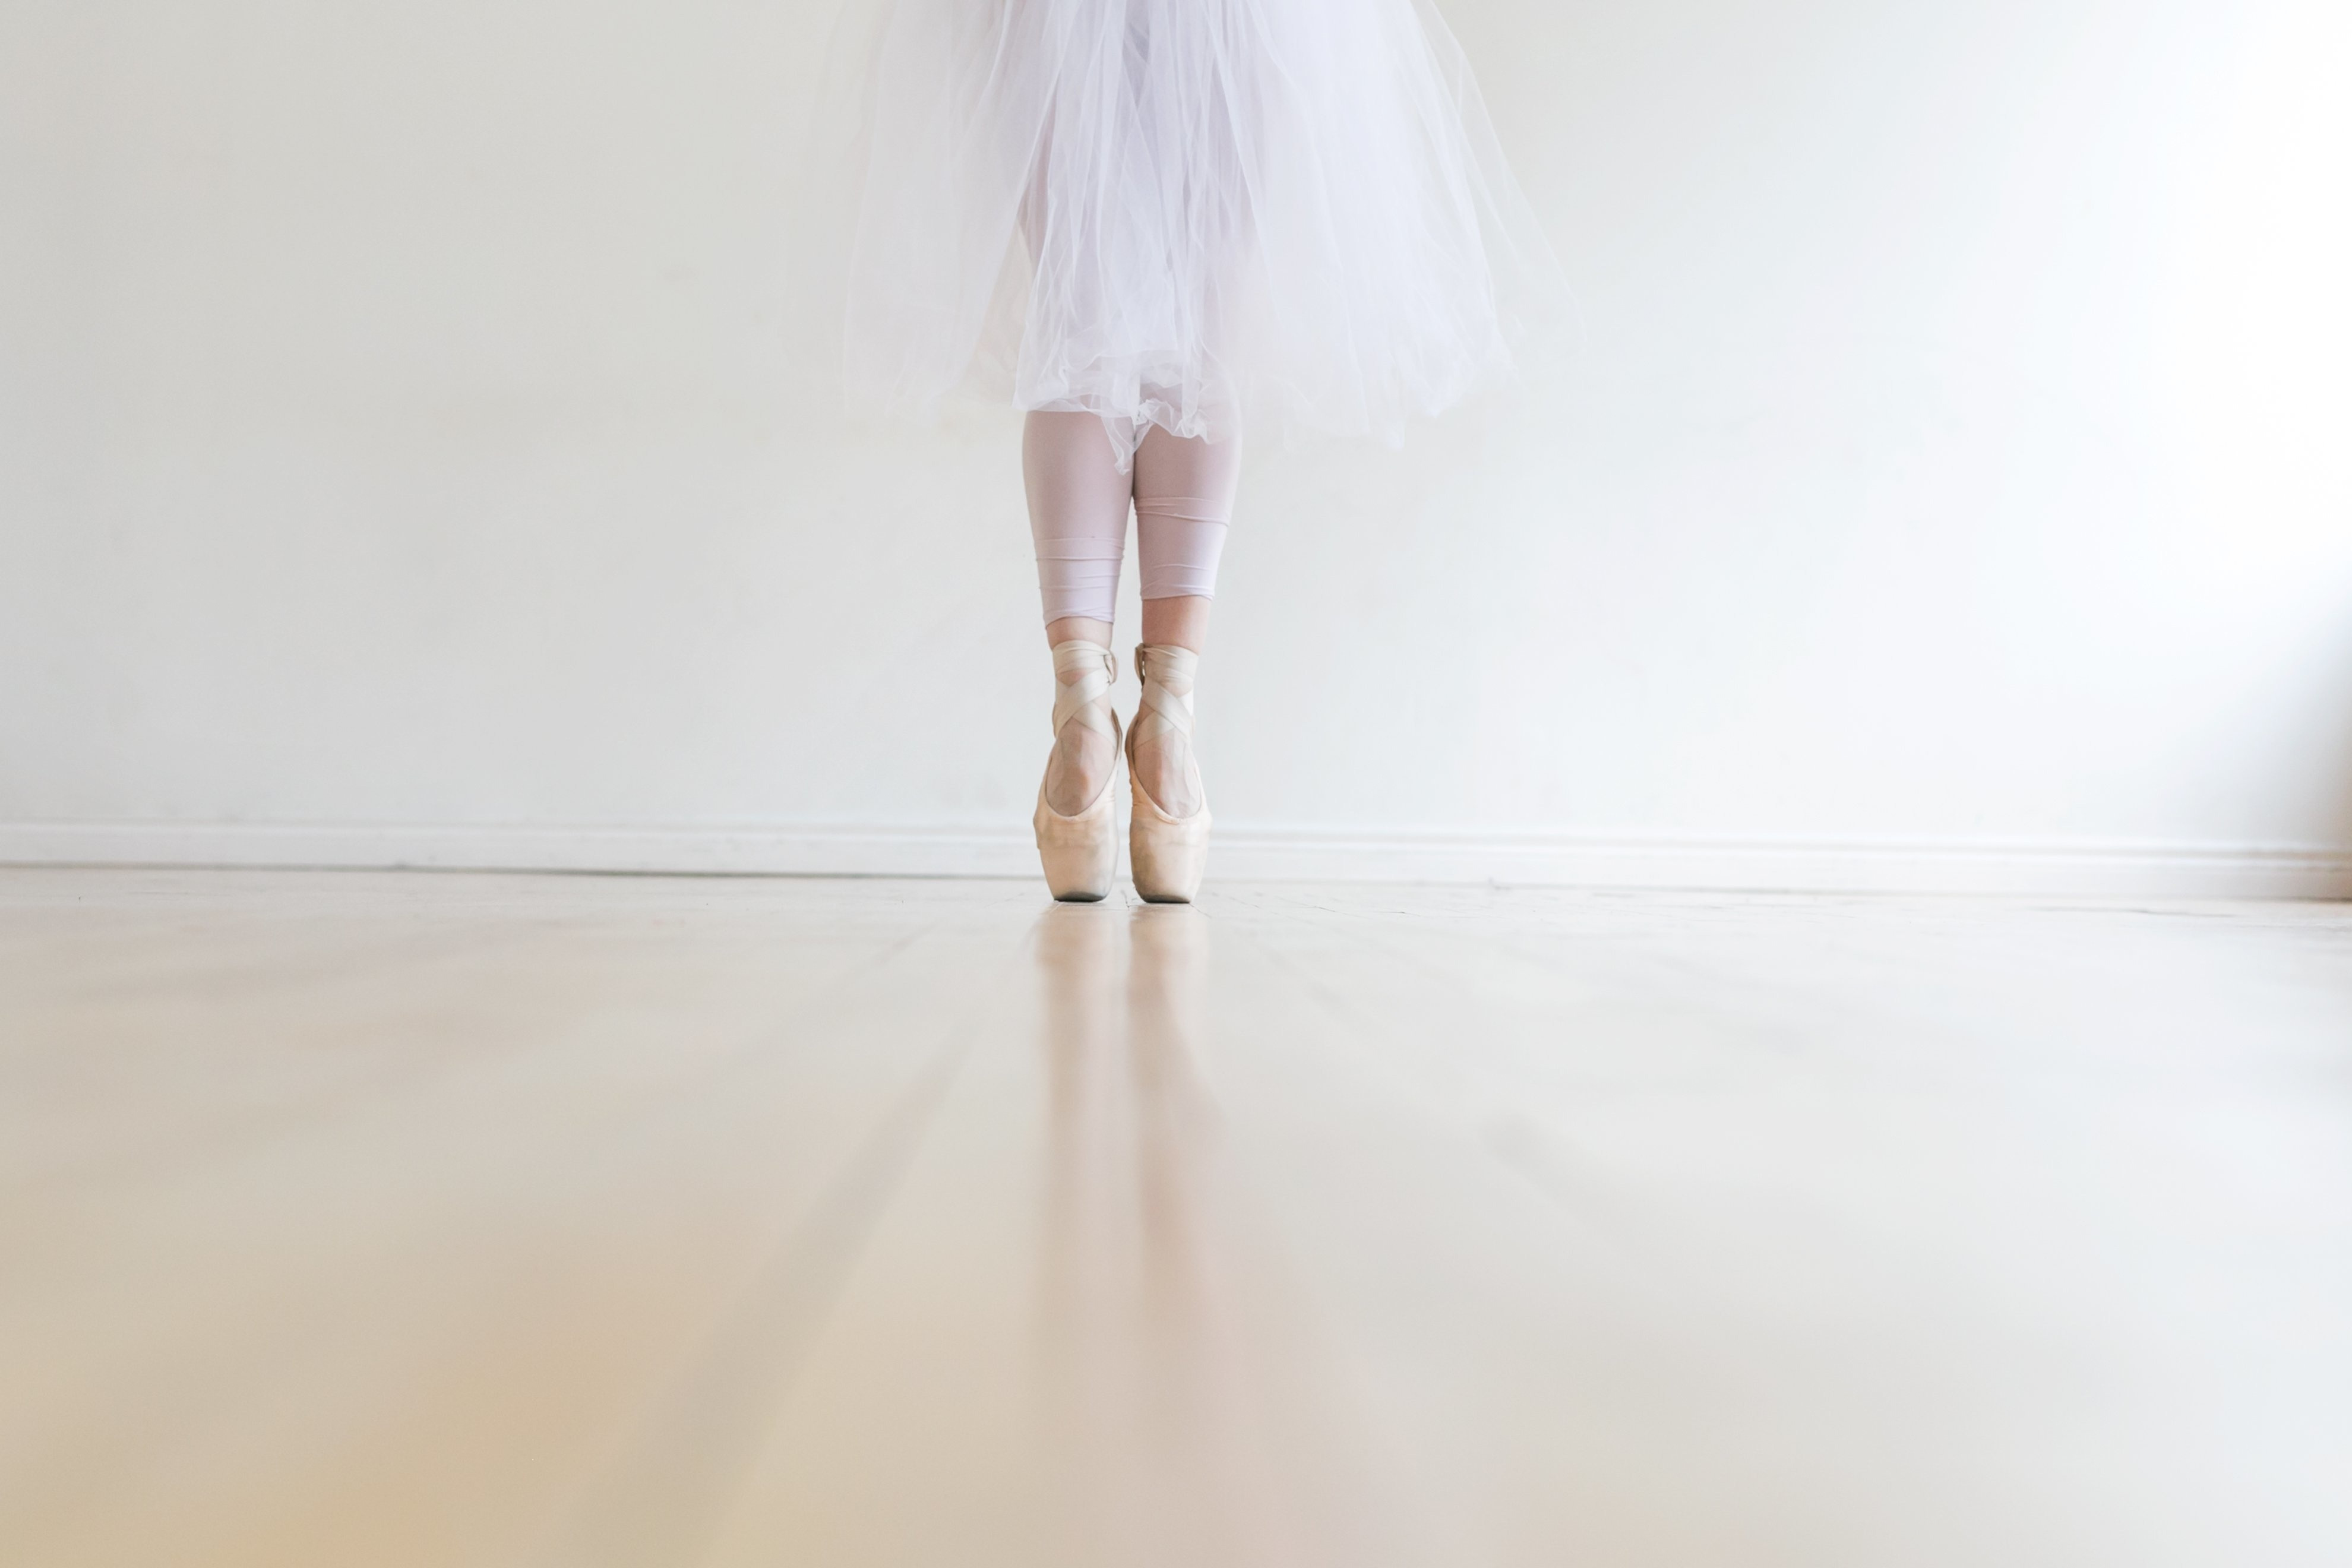 Pointe Shoe Fitting Tips to Understand Vamp Length